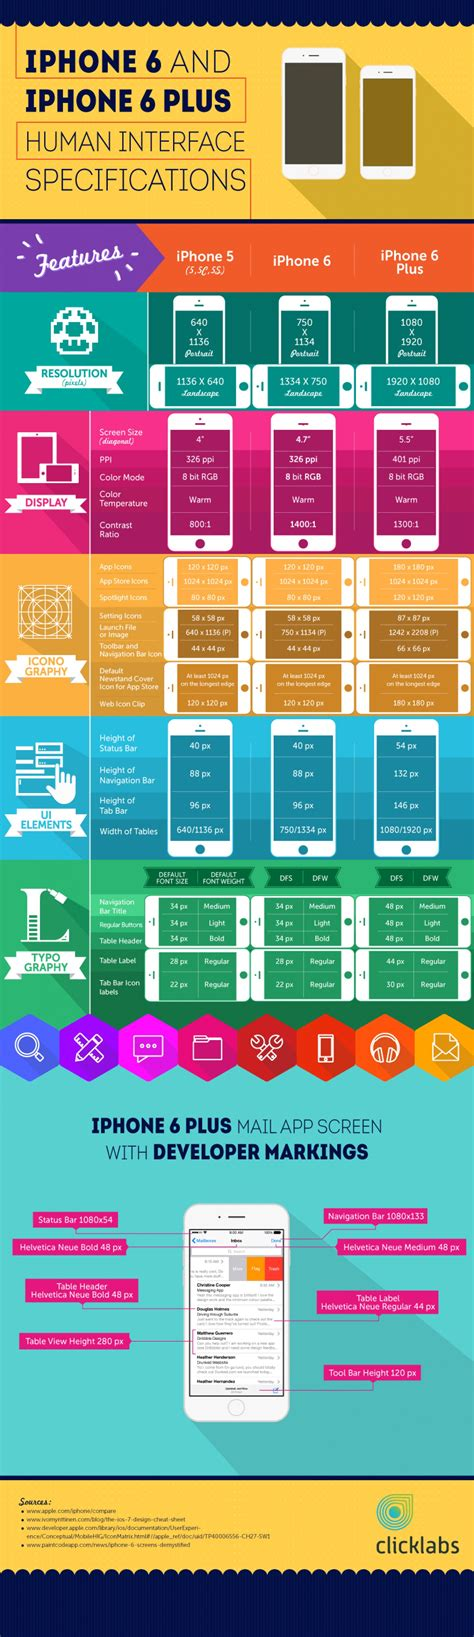 infographic layout cheat sheet design cheat sheet for ios 8 developer visual ly